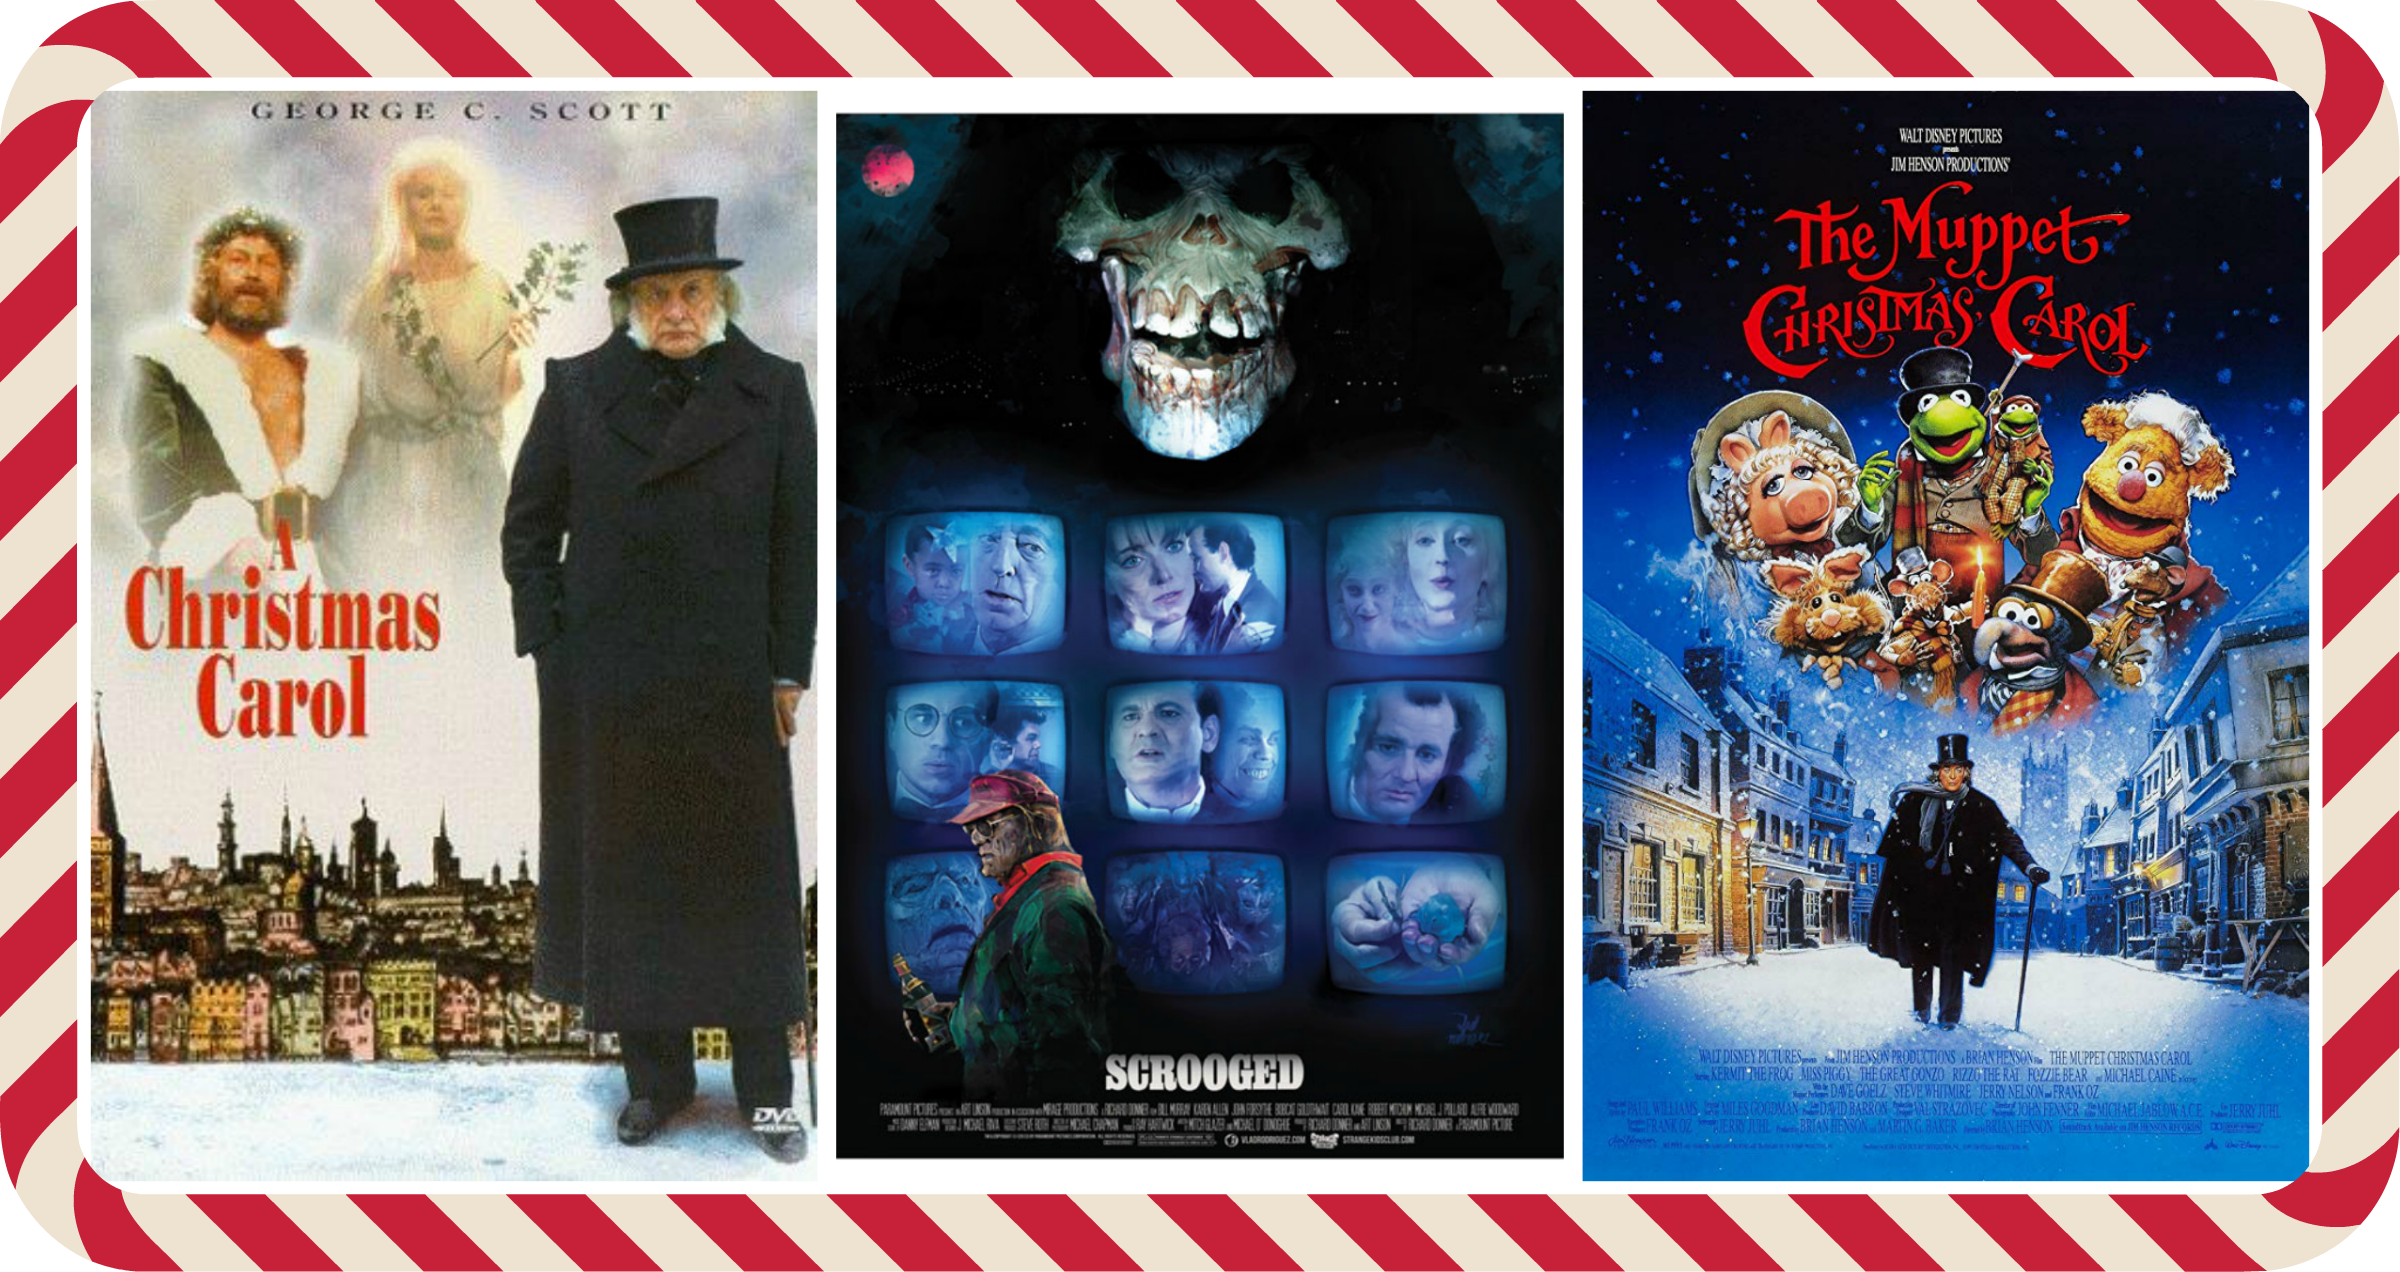 Test Pattern Christmas Special More Of Gravy Than Of Grave A Christmas Carol 1984 Scrooged A Muppet Christmas Carol Test Pattern A Horror Movie Podcast Lyssna Har Poddtoppen Se